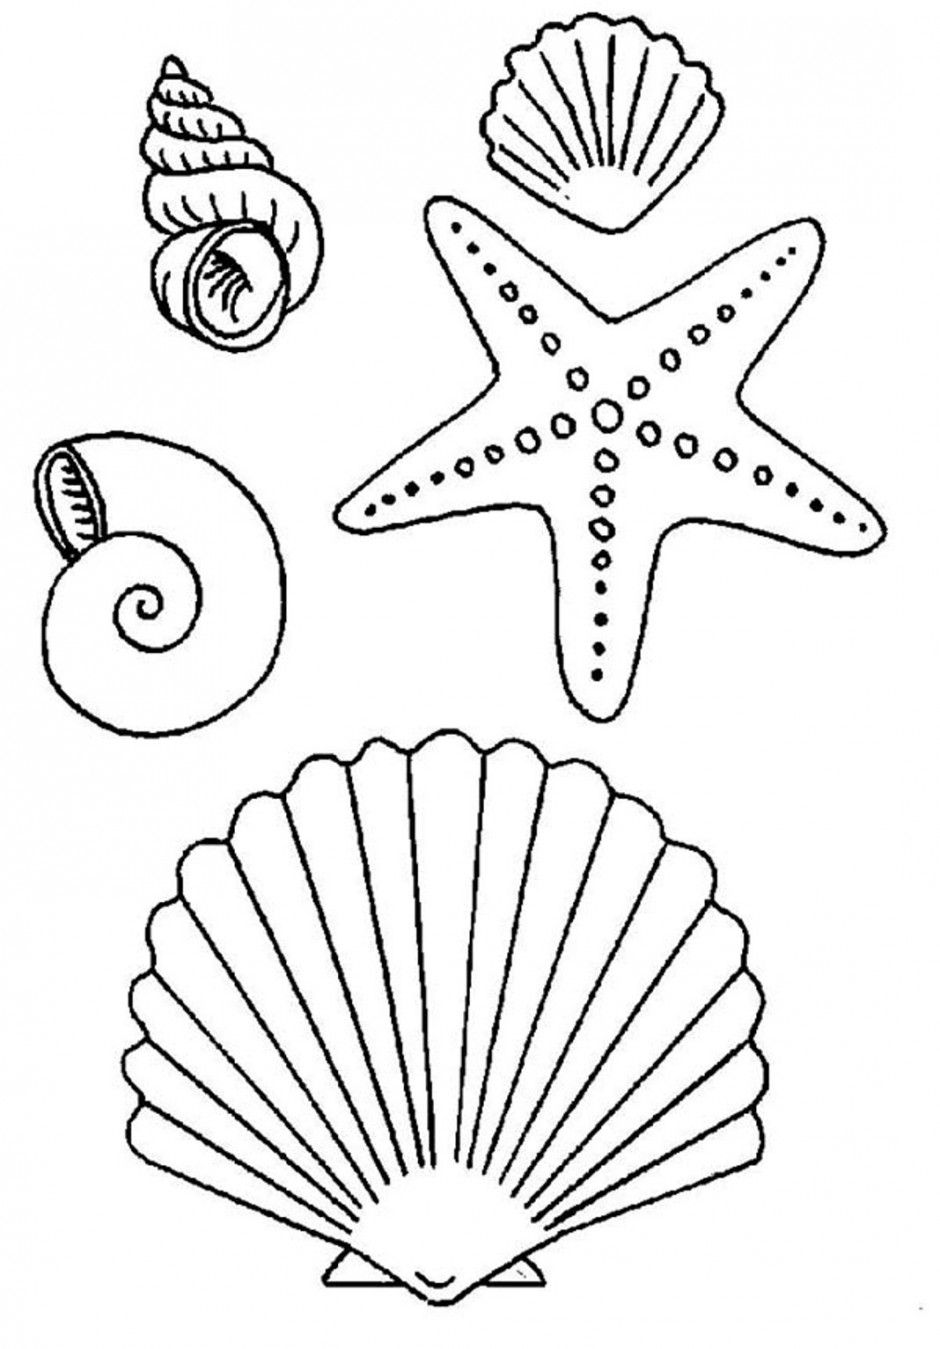 Free Printable Starfish Coloring Pages - DopePicz  Seashell